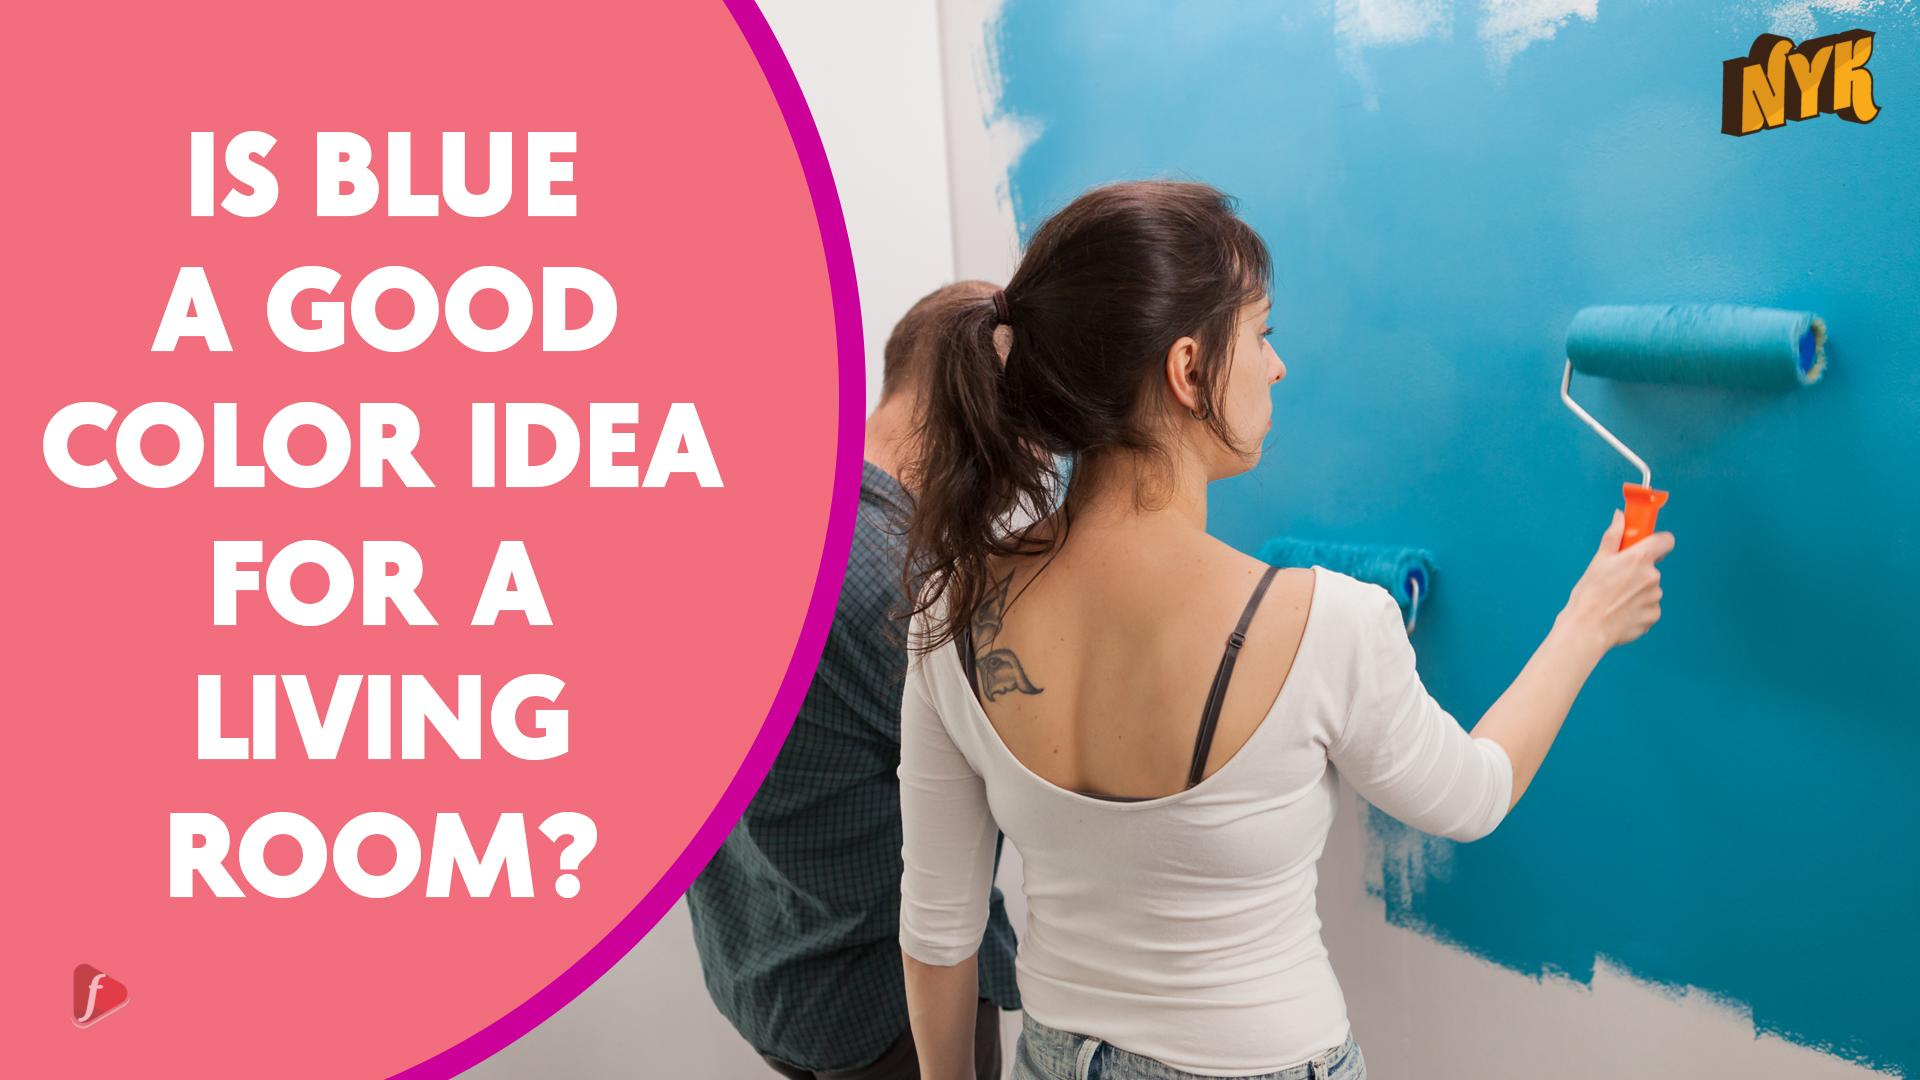 Top 3 Best Wall Colors Ideas For Your Living Room [Video]